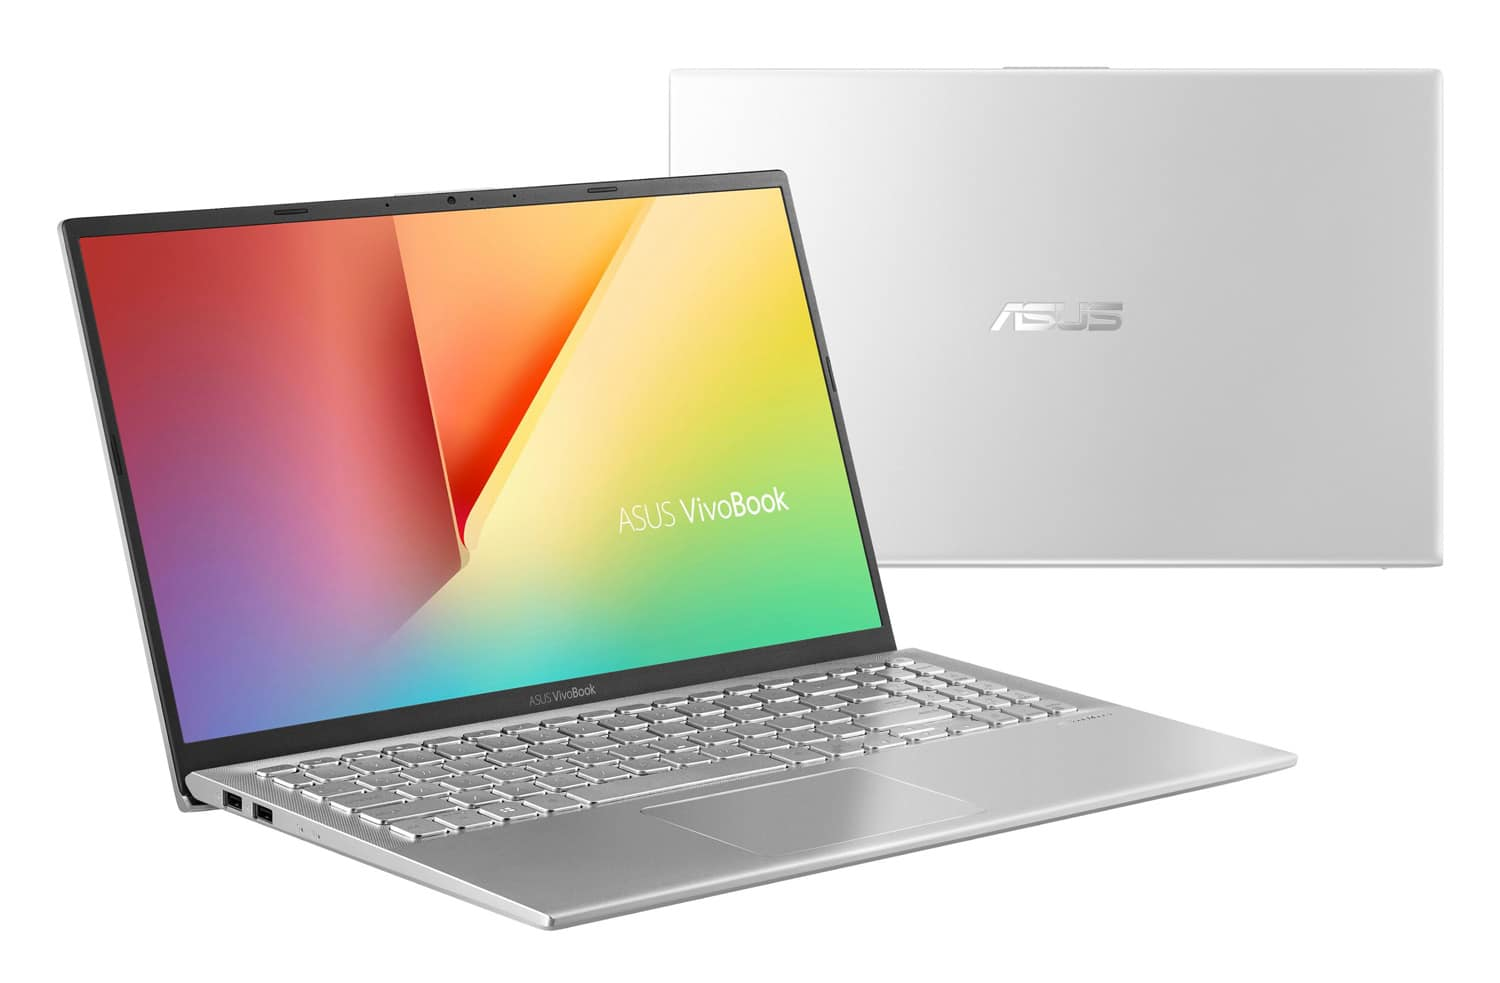 Asus VivoBook S512DA-EJ907T, 15 pouces borderless AMD (719€)